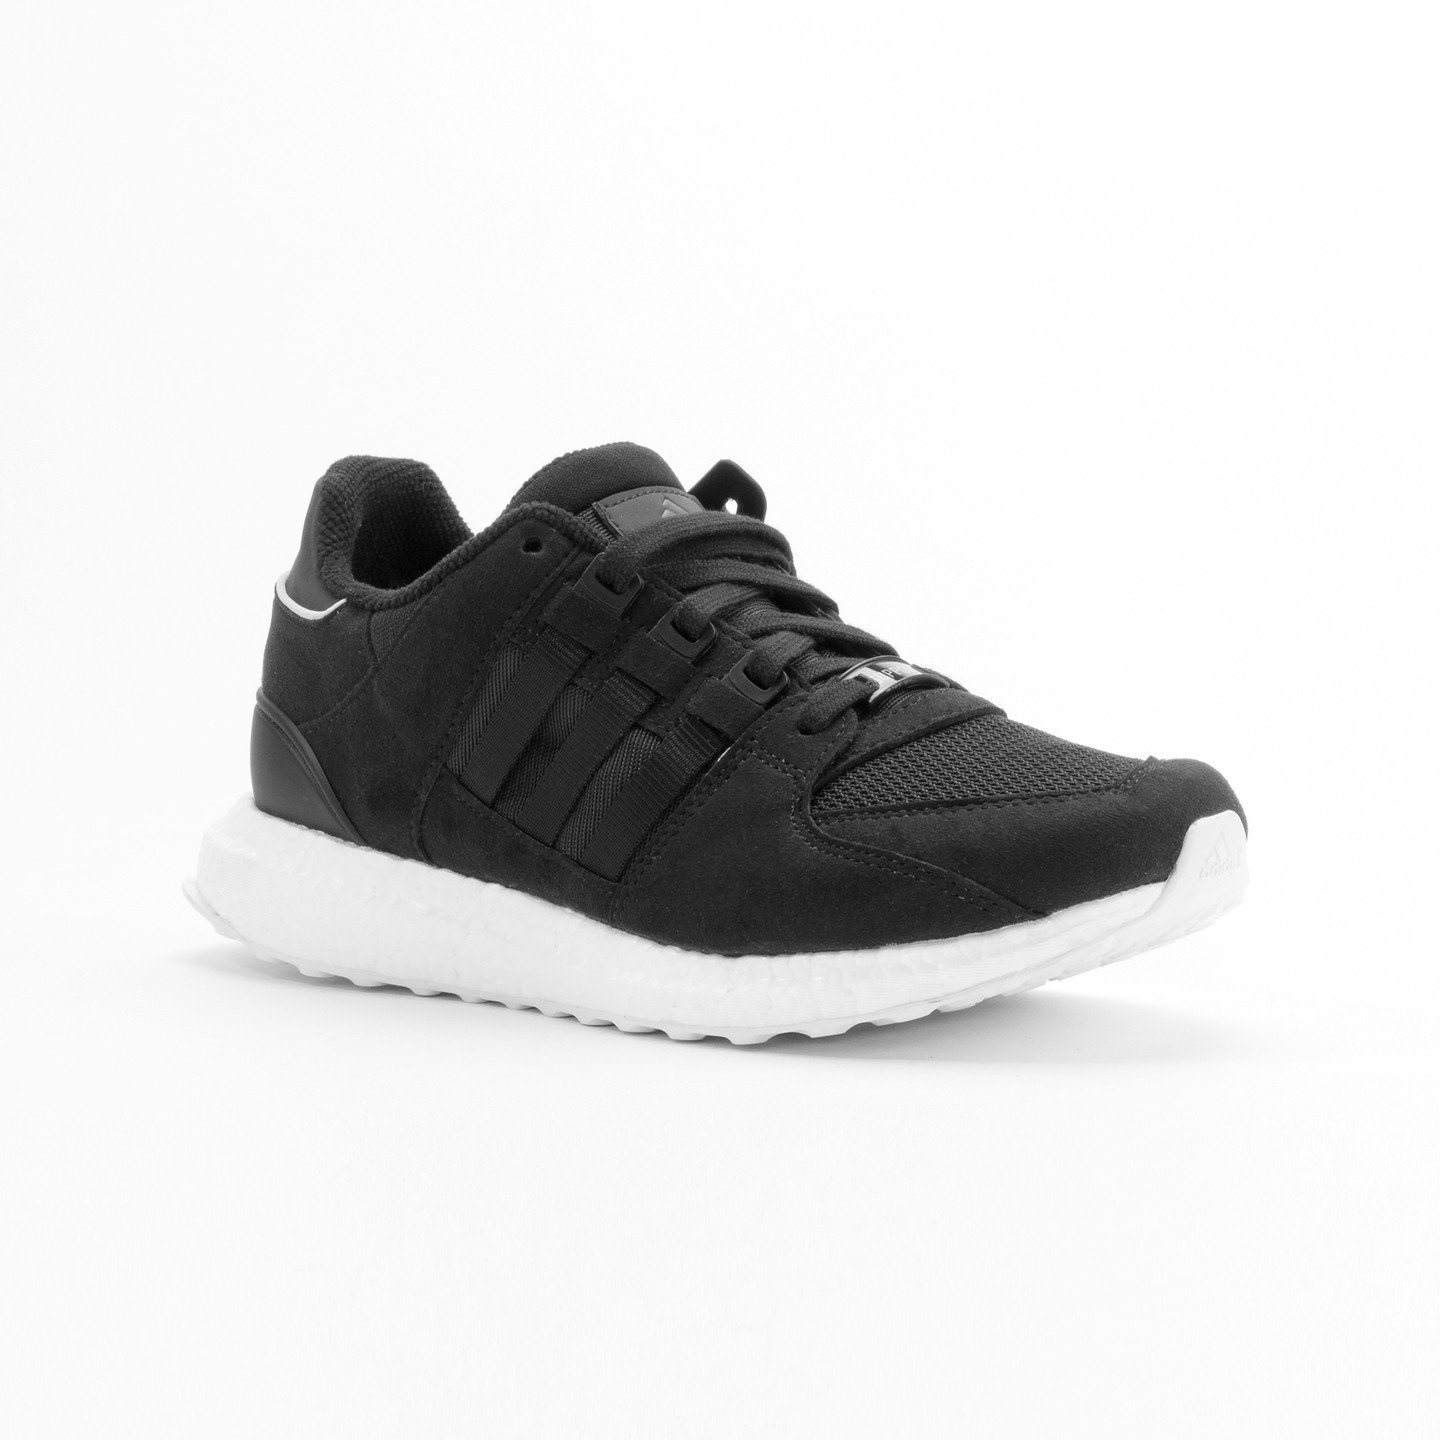 Adidas Equipment Support 93/16 Core Black / Running White BY9148-42.66